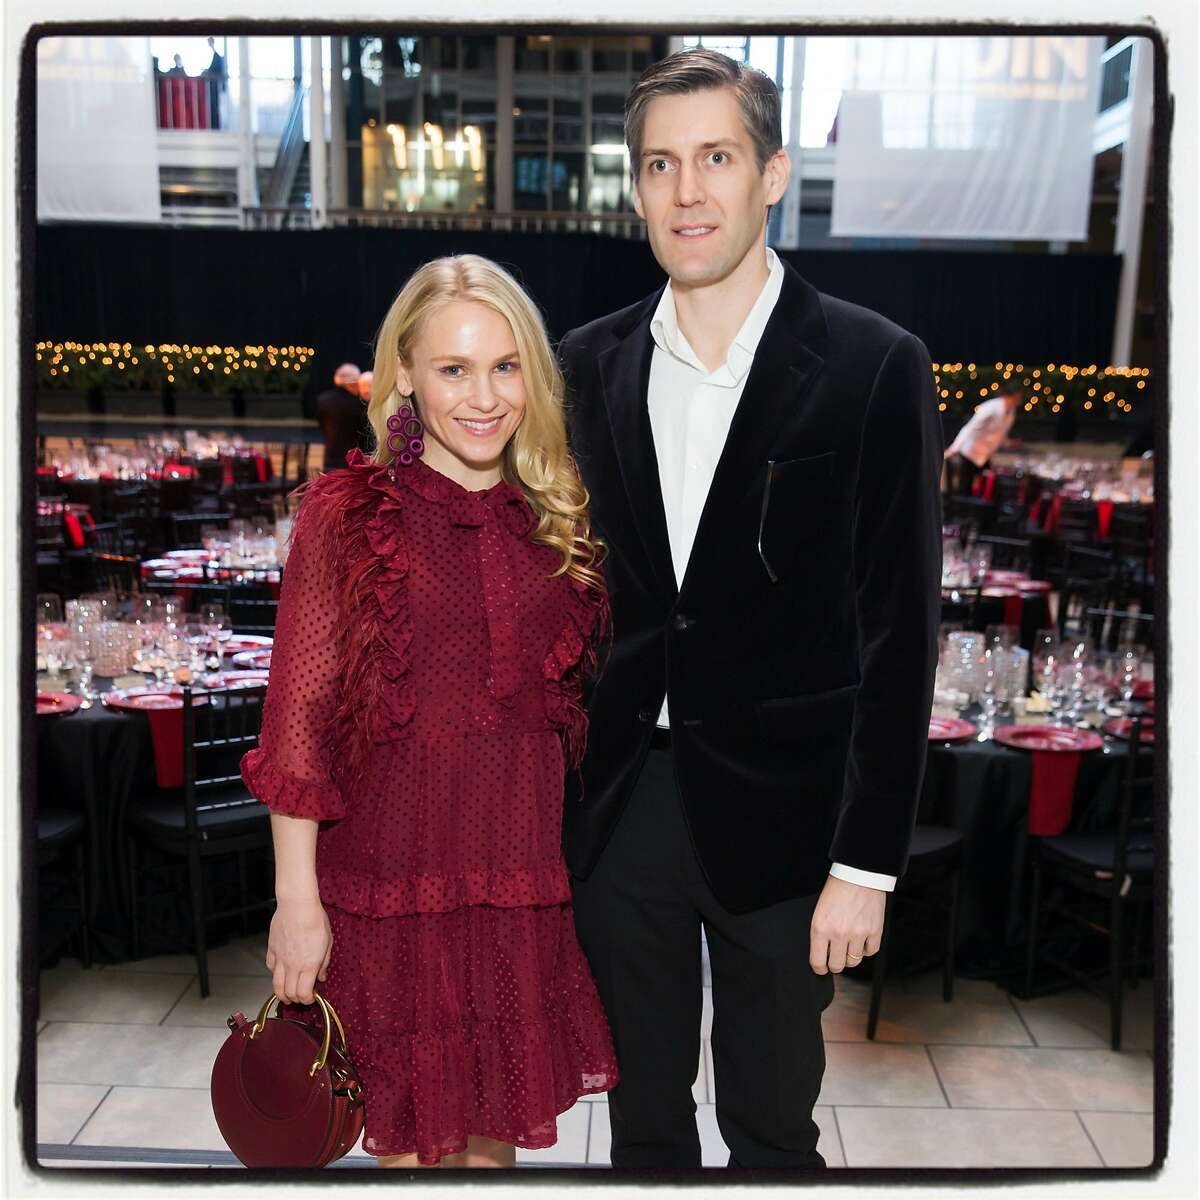 Tatum and Alexander Getty at the Smuin Ballet gala. March 4, 2018.